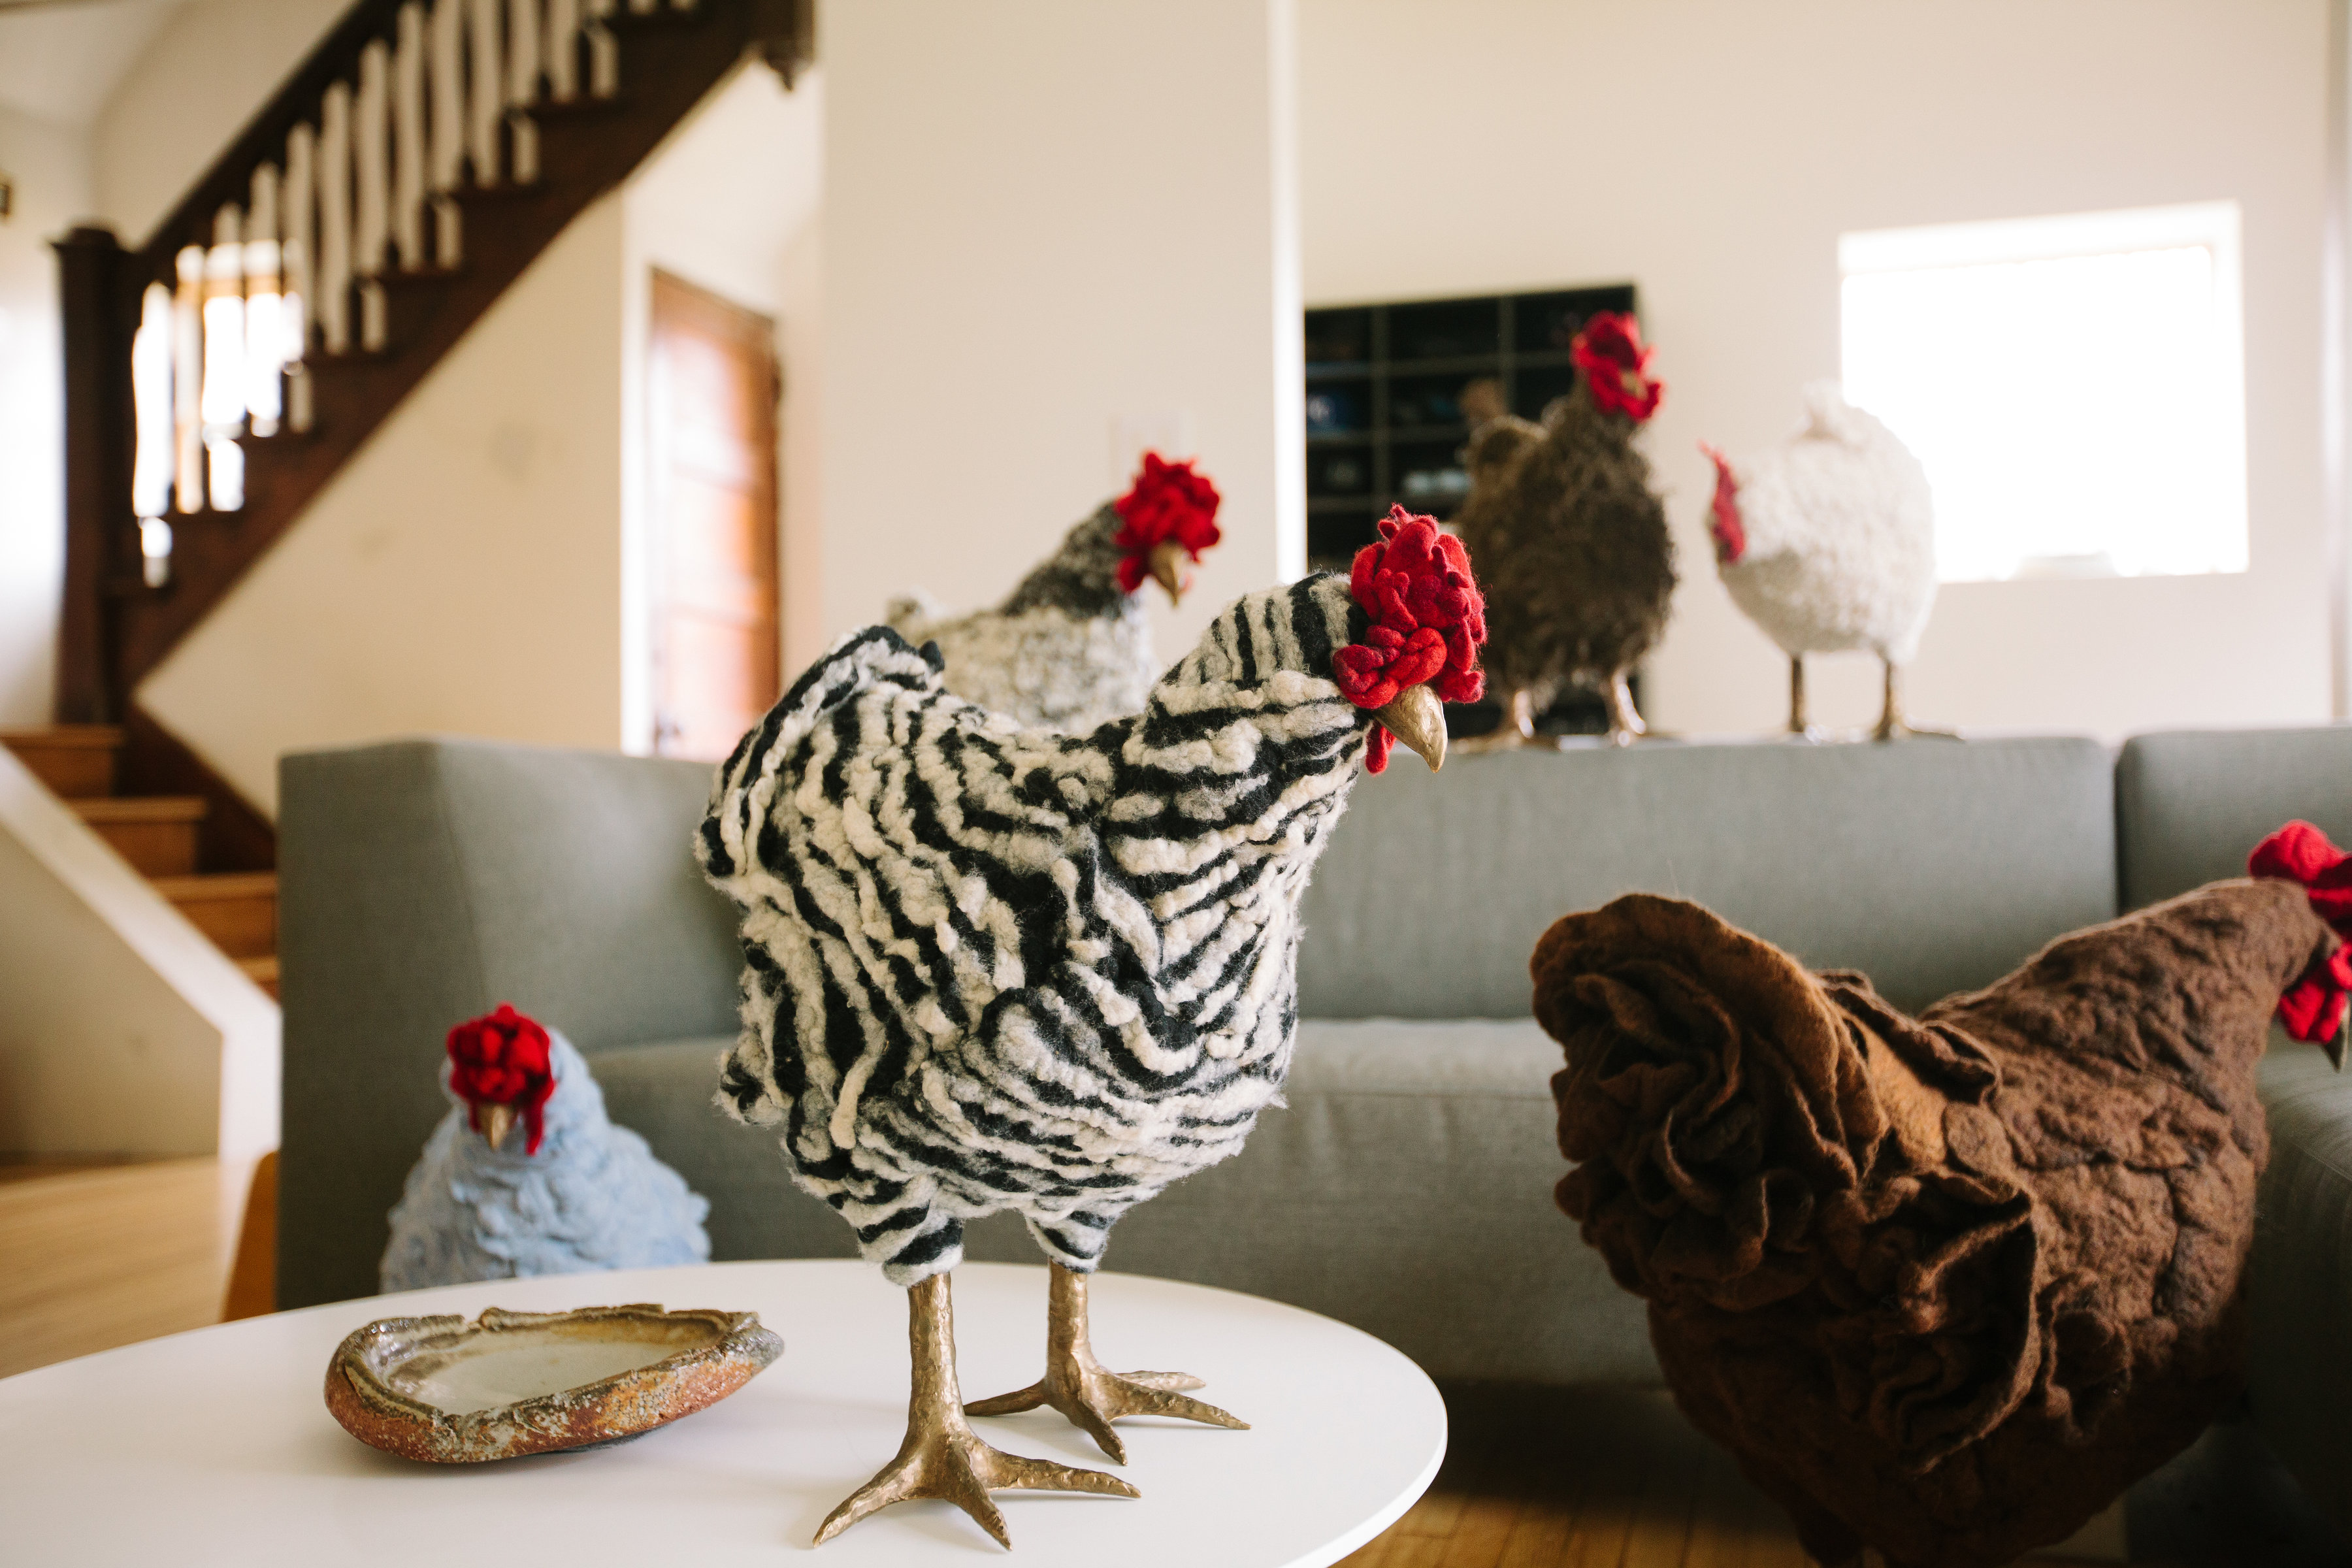 Chickens in the living room